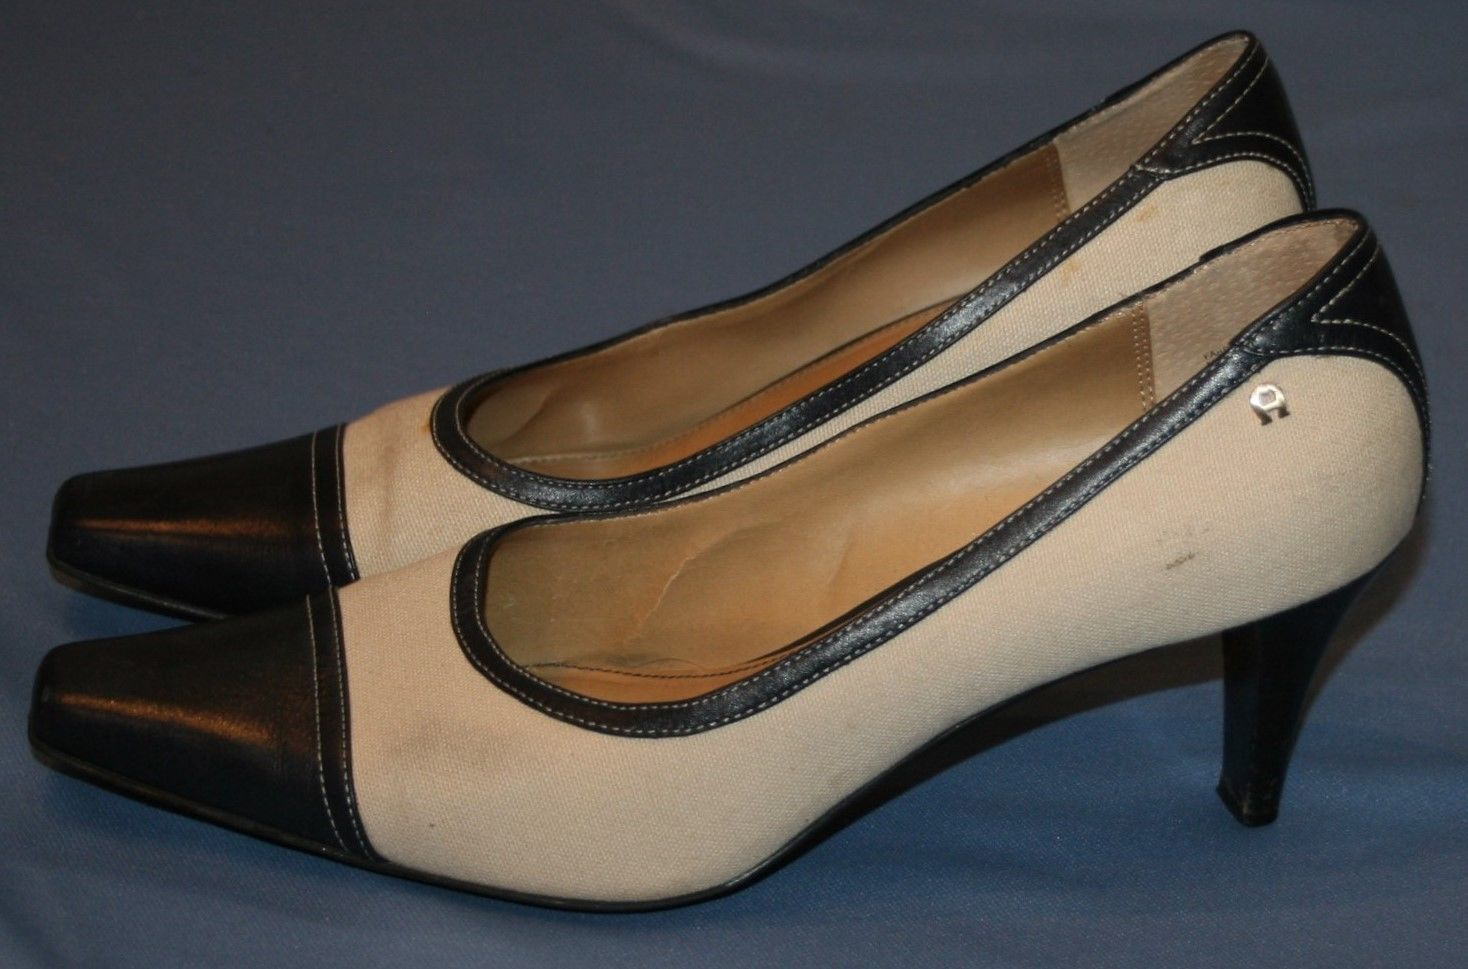 690fe627a5b Etienne Aigner Sz 10M 10 M Heels Pumps Two and 50 similar items